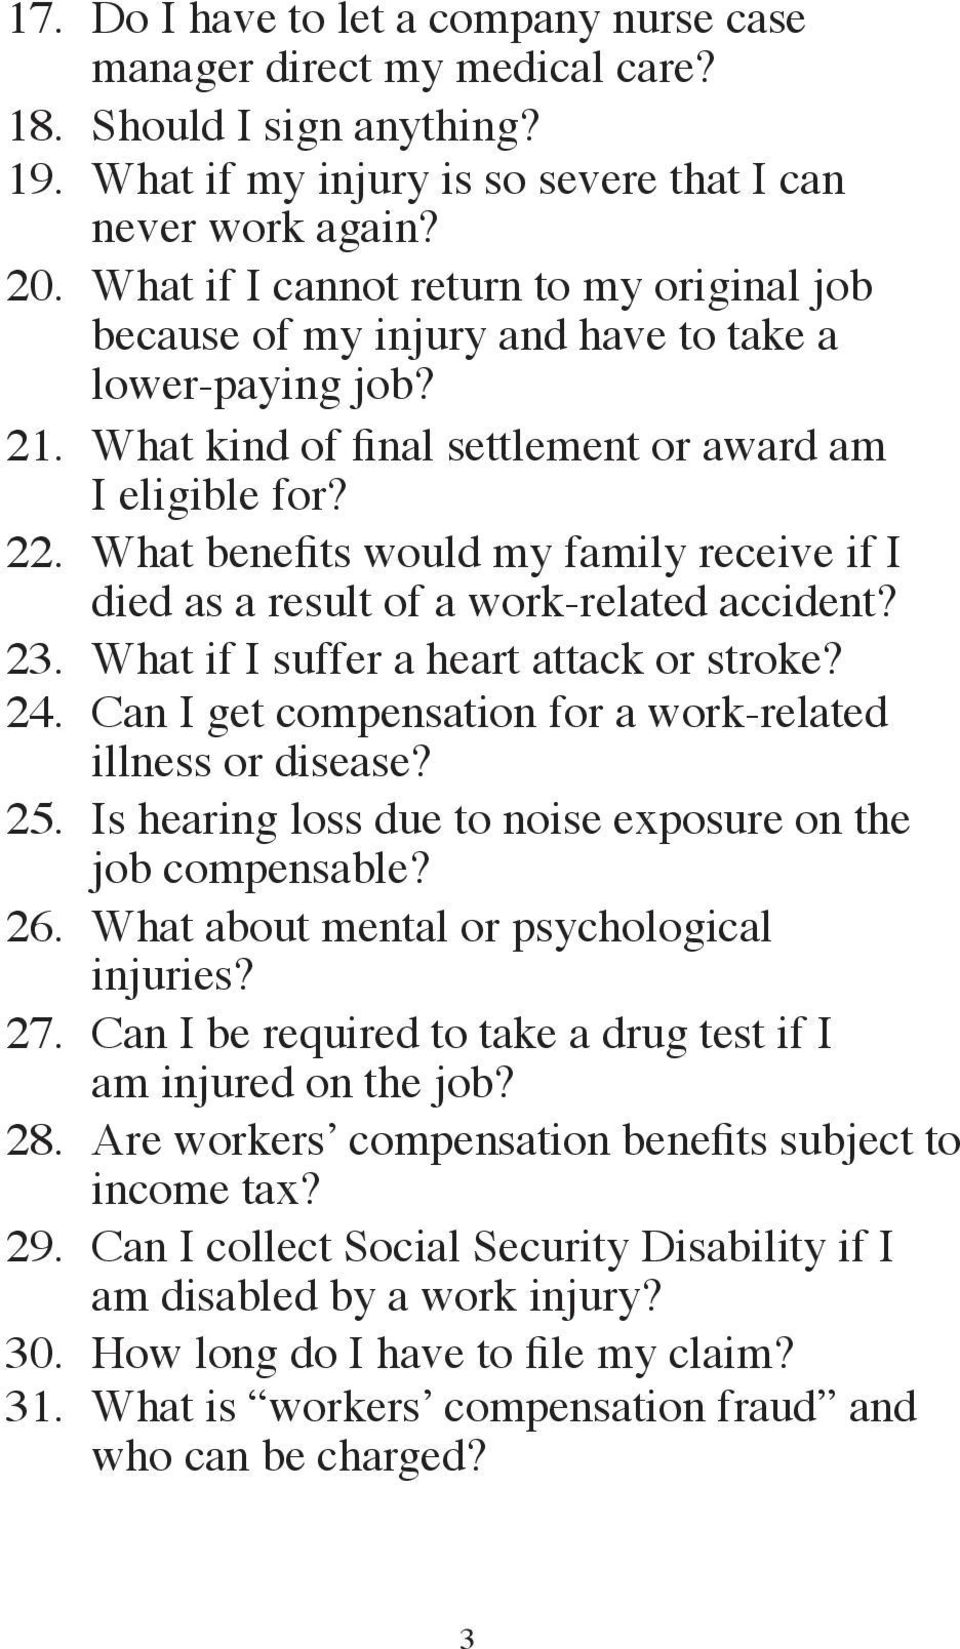 What benefits would my family receive if I died as a result of a work-related accident? 23. What if I suffer a heart attack or stroke? 24. Can I get compensation for a work-related illness or disease?